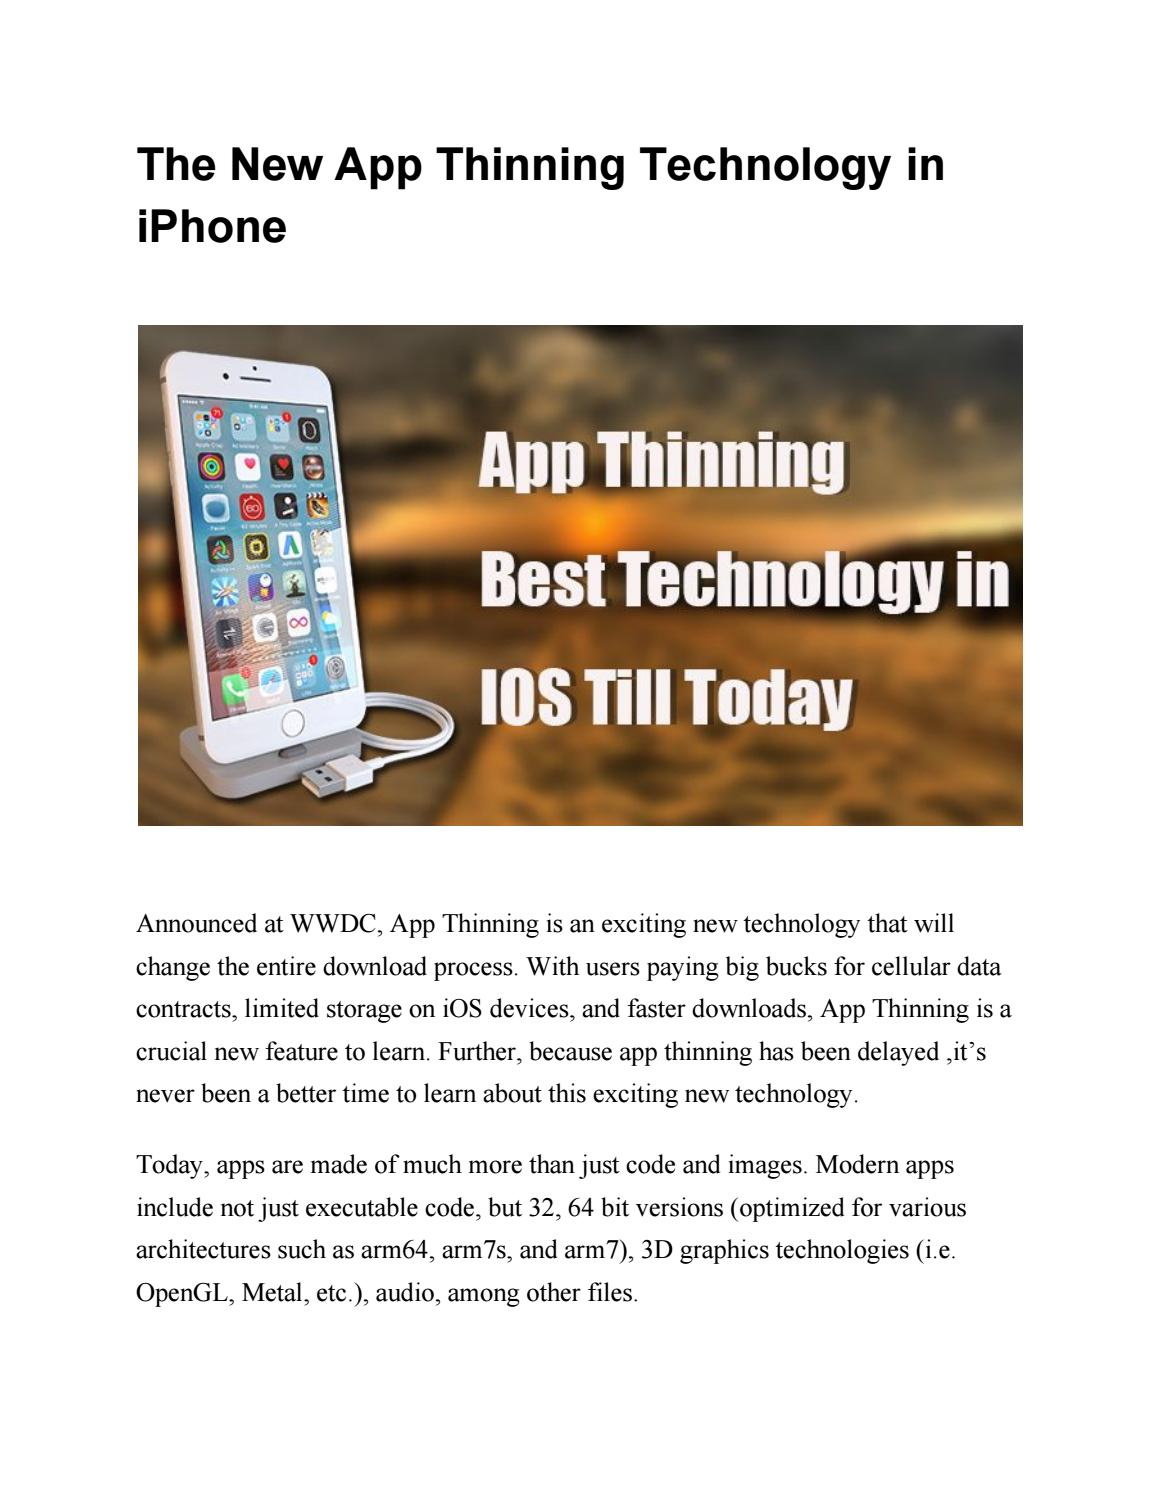 The New App Thinning Technology in iPhone by Harshal Shah